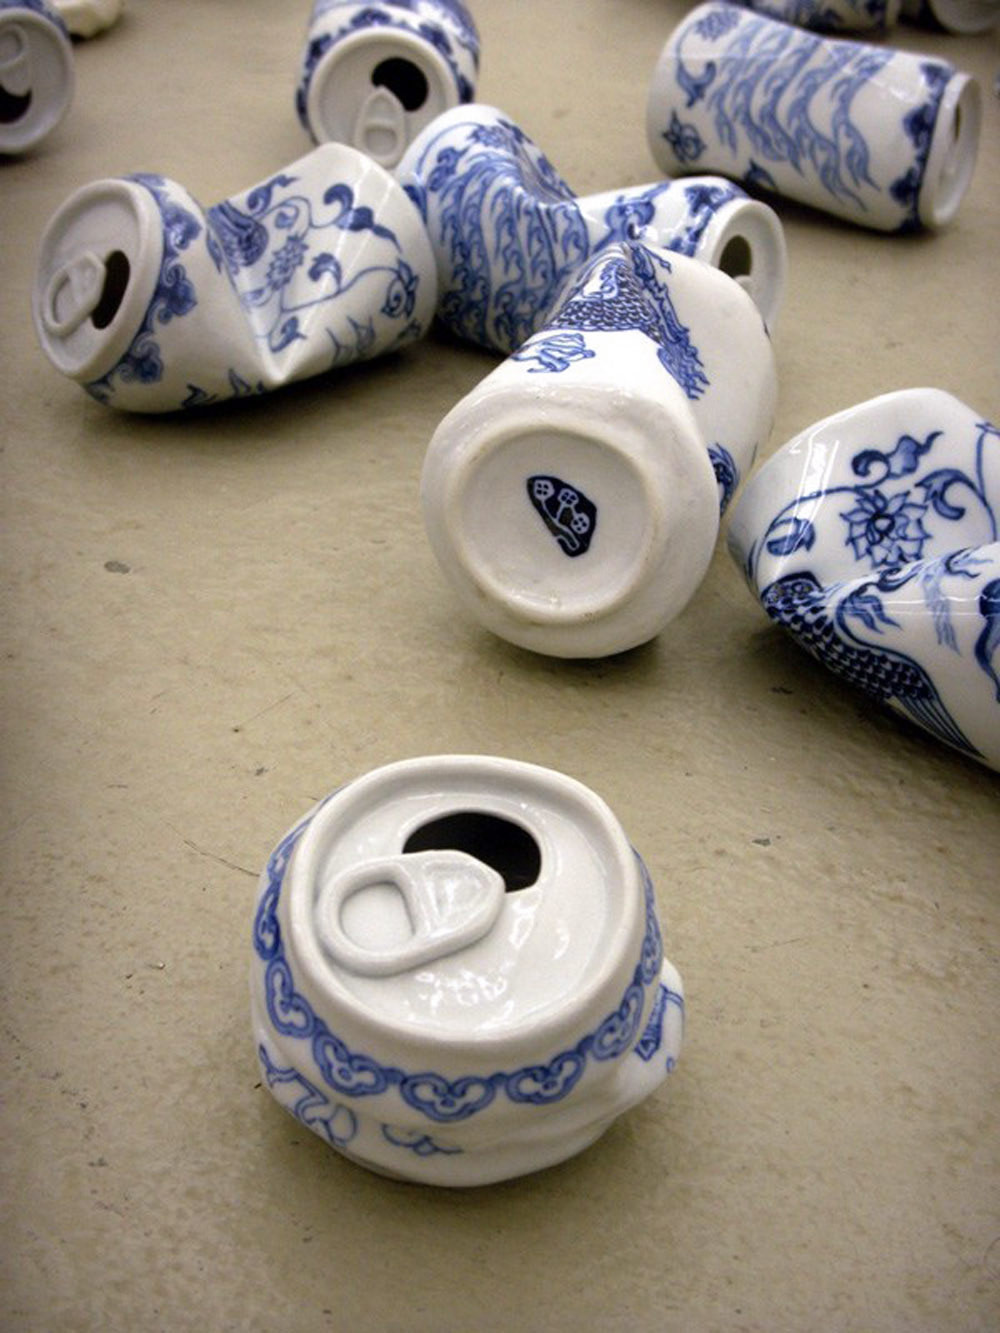 ming vases designs of art colossal page 72 within adopting traditional decorative motifs found on ming dynasty ceramics chinese artist lei xue sculpted these humorous smashed aluminum cans that bridge the